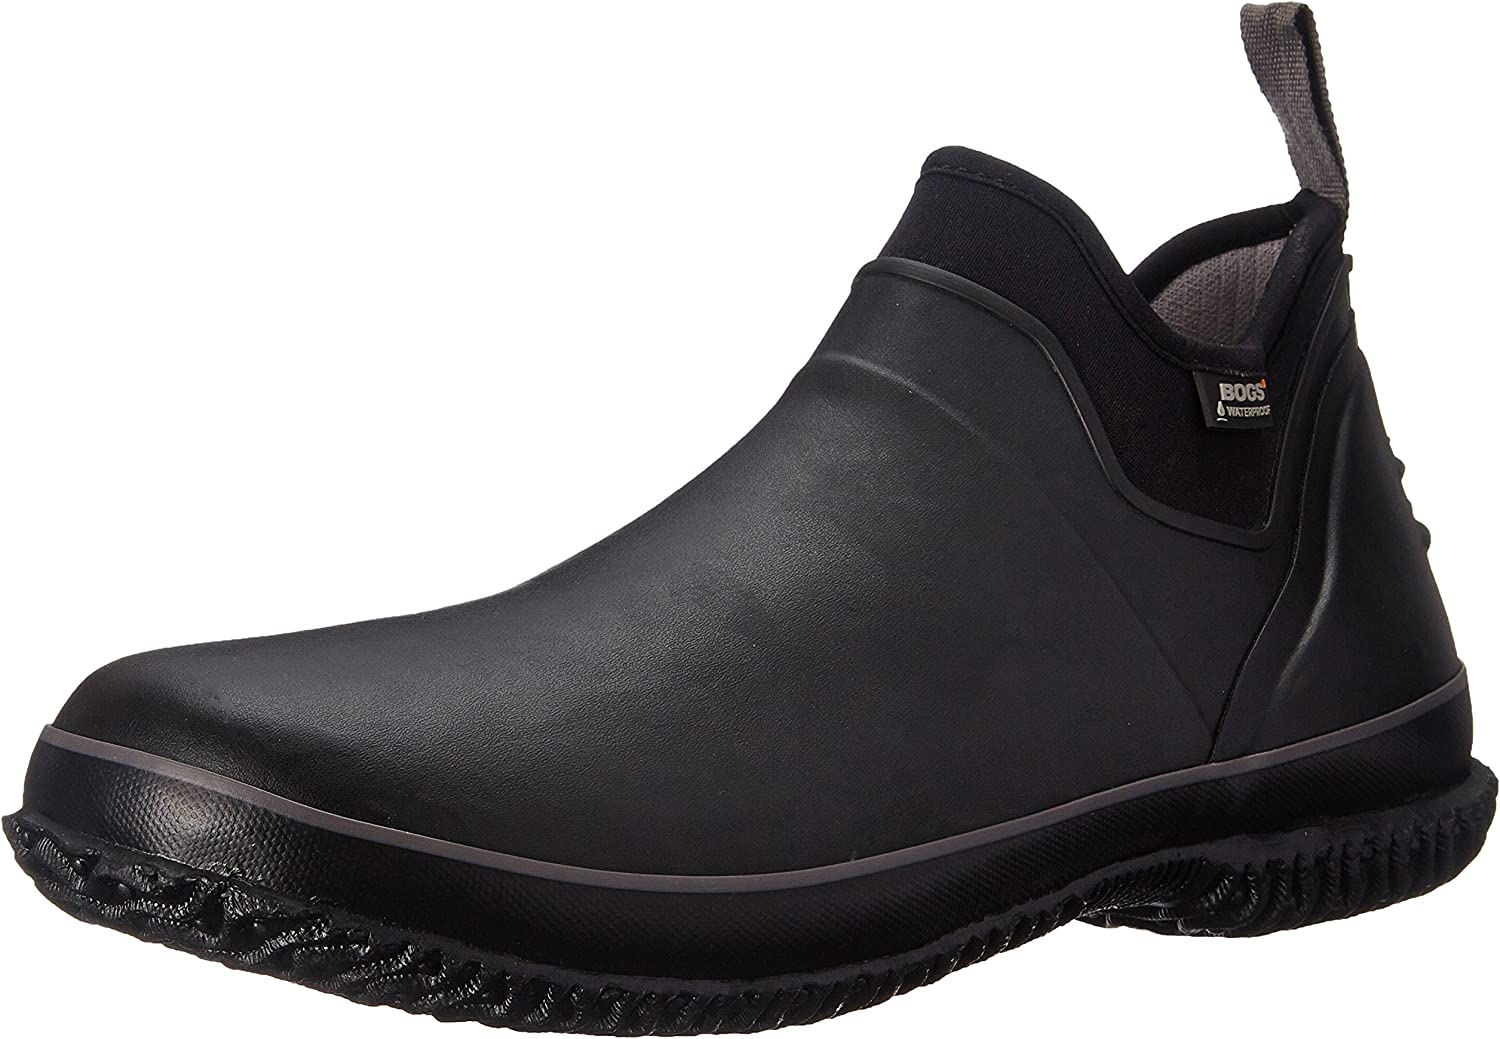 Bogs Mens Urban Farmer Low Waterproof Work Rain Boot